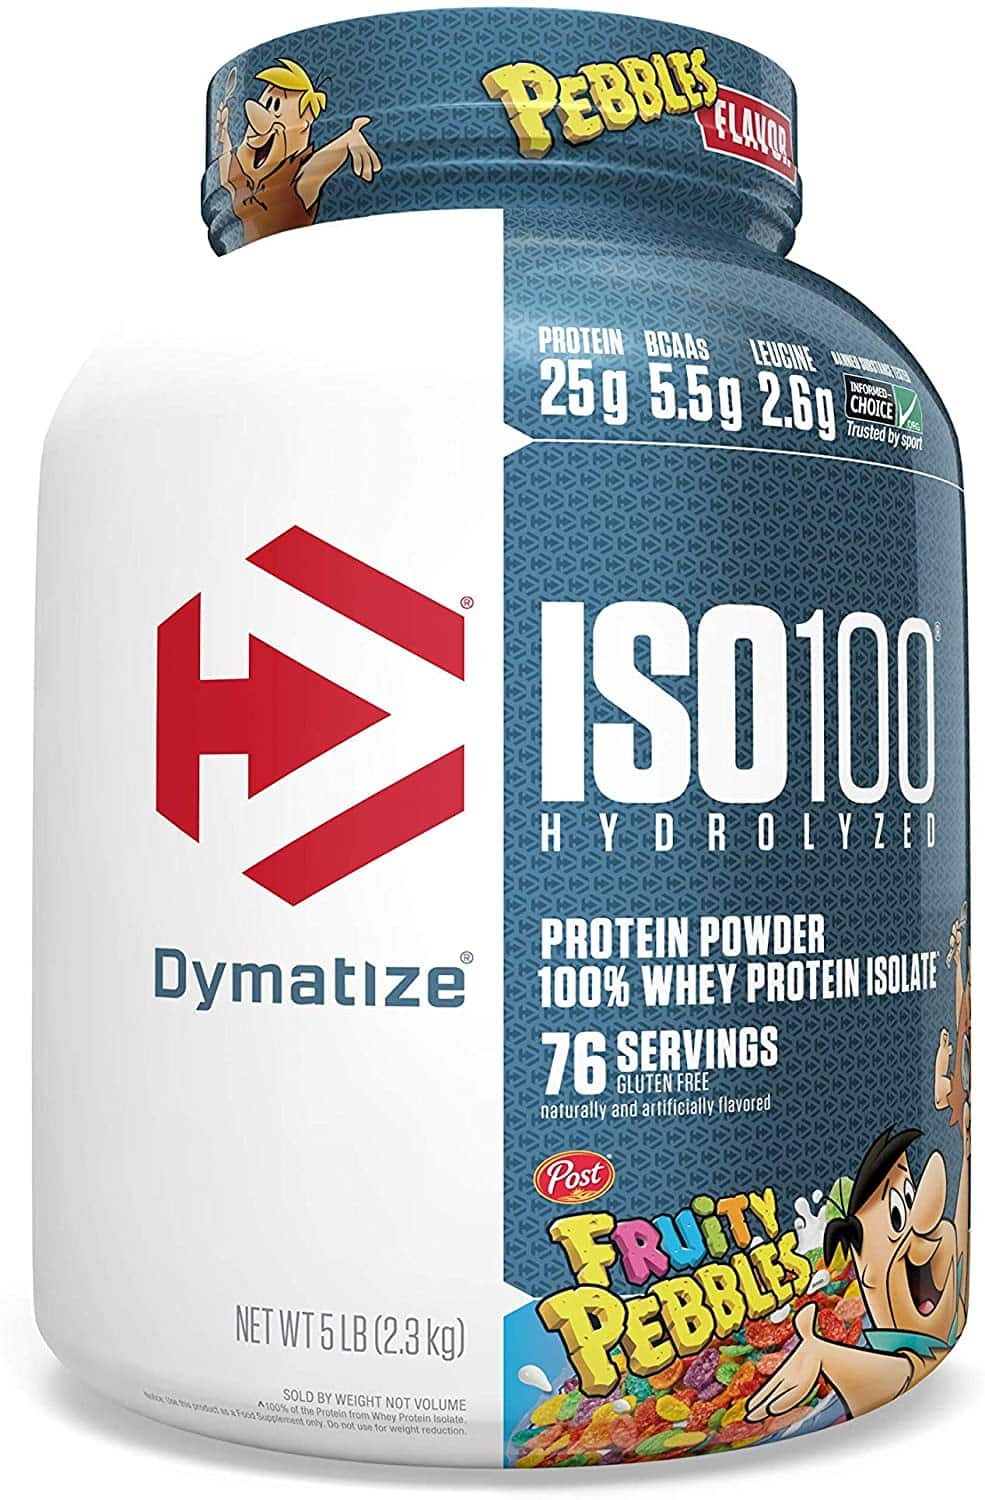 5# Dymatize ISO100 - whey protein ISOLATE - Fruity or Cocoa Pebbles - $40.04 Amazon S&S